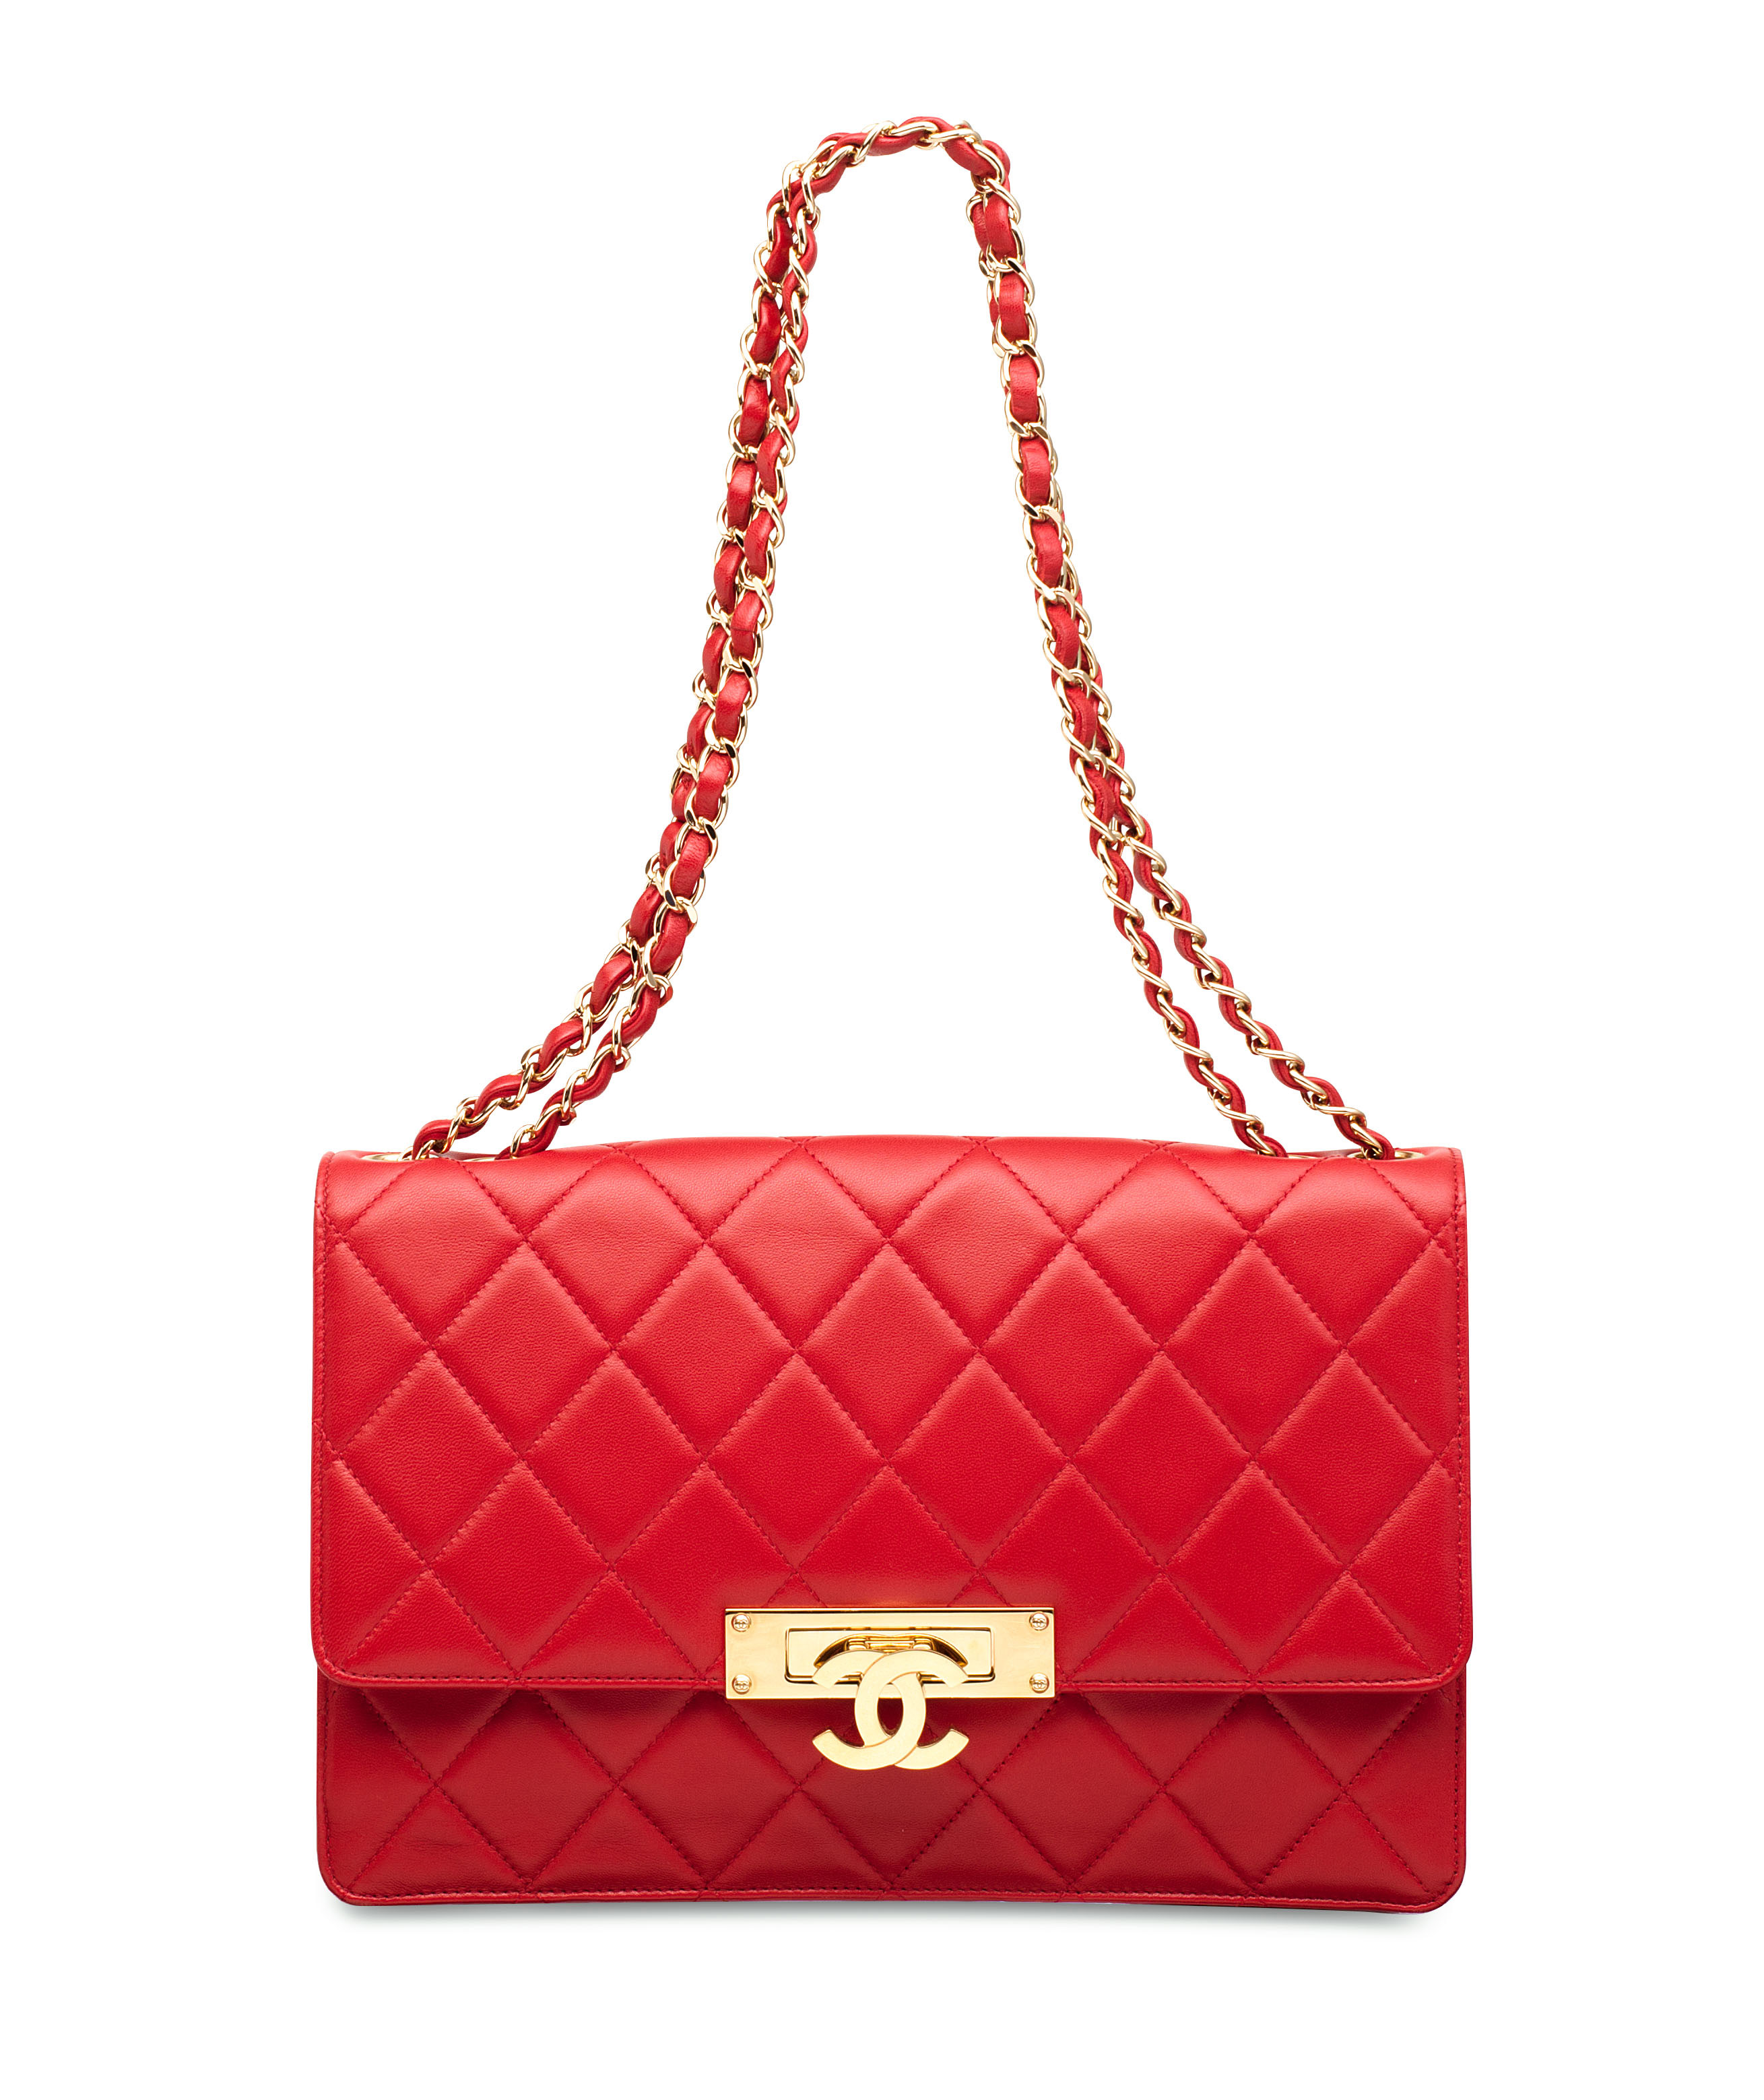 A BRIGHT RED LAMBSKIN LEATHER